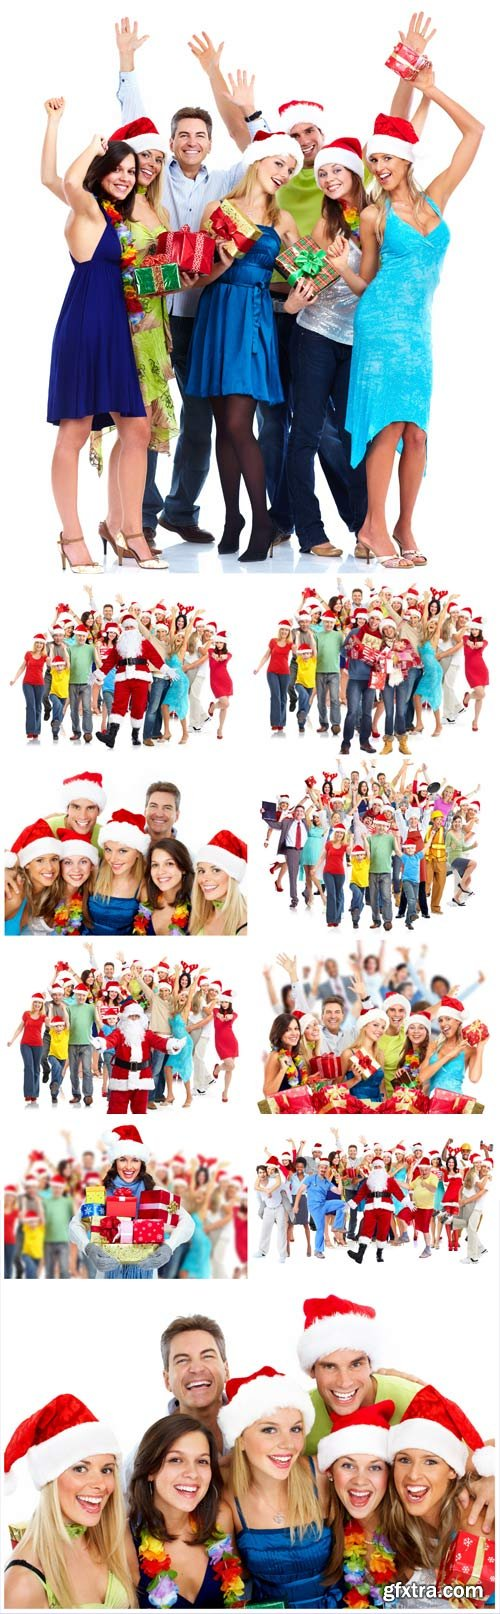 New Year and Christmas stock photos №8